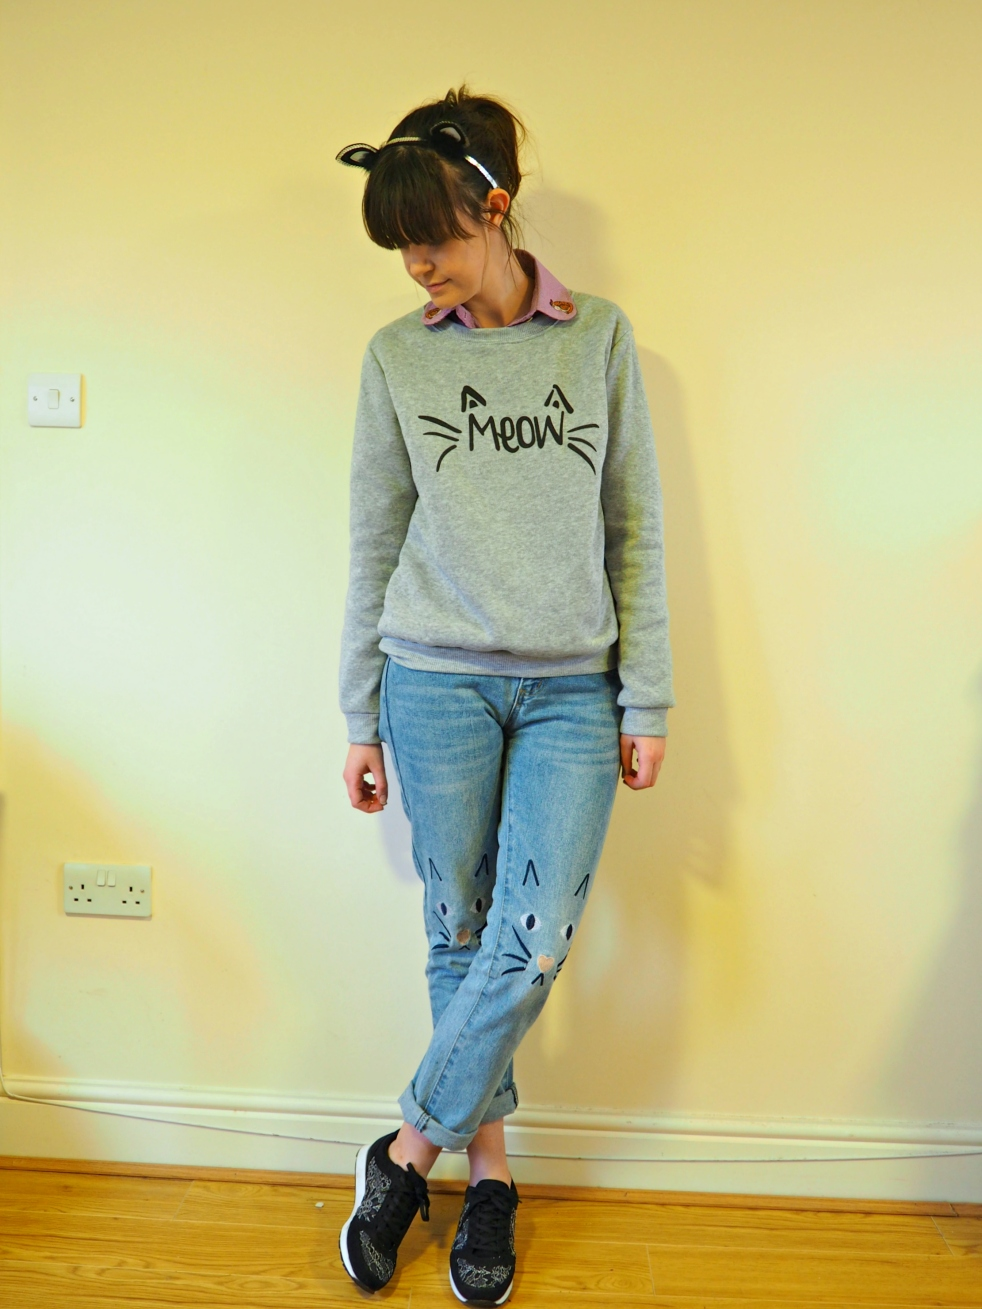 Crazy Cat Lady Outfit of the Day Fashion Blog Blogger